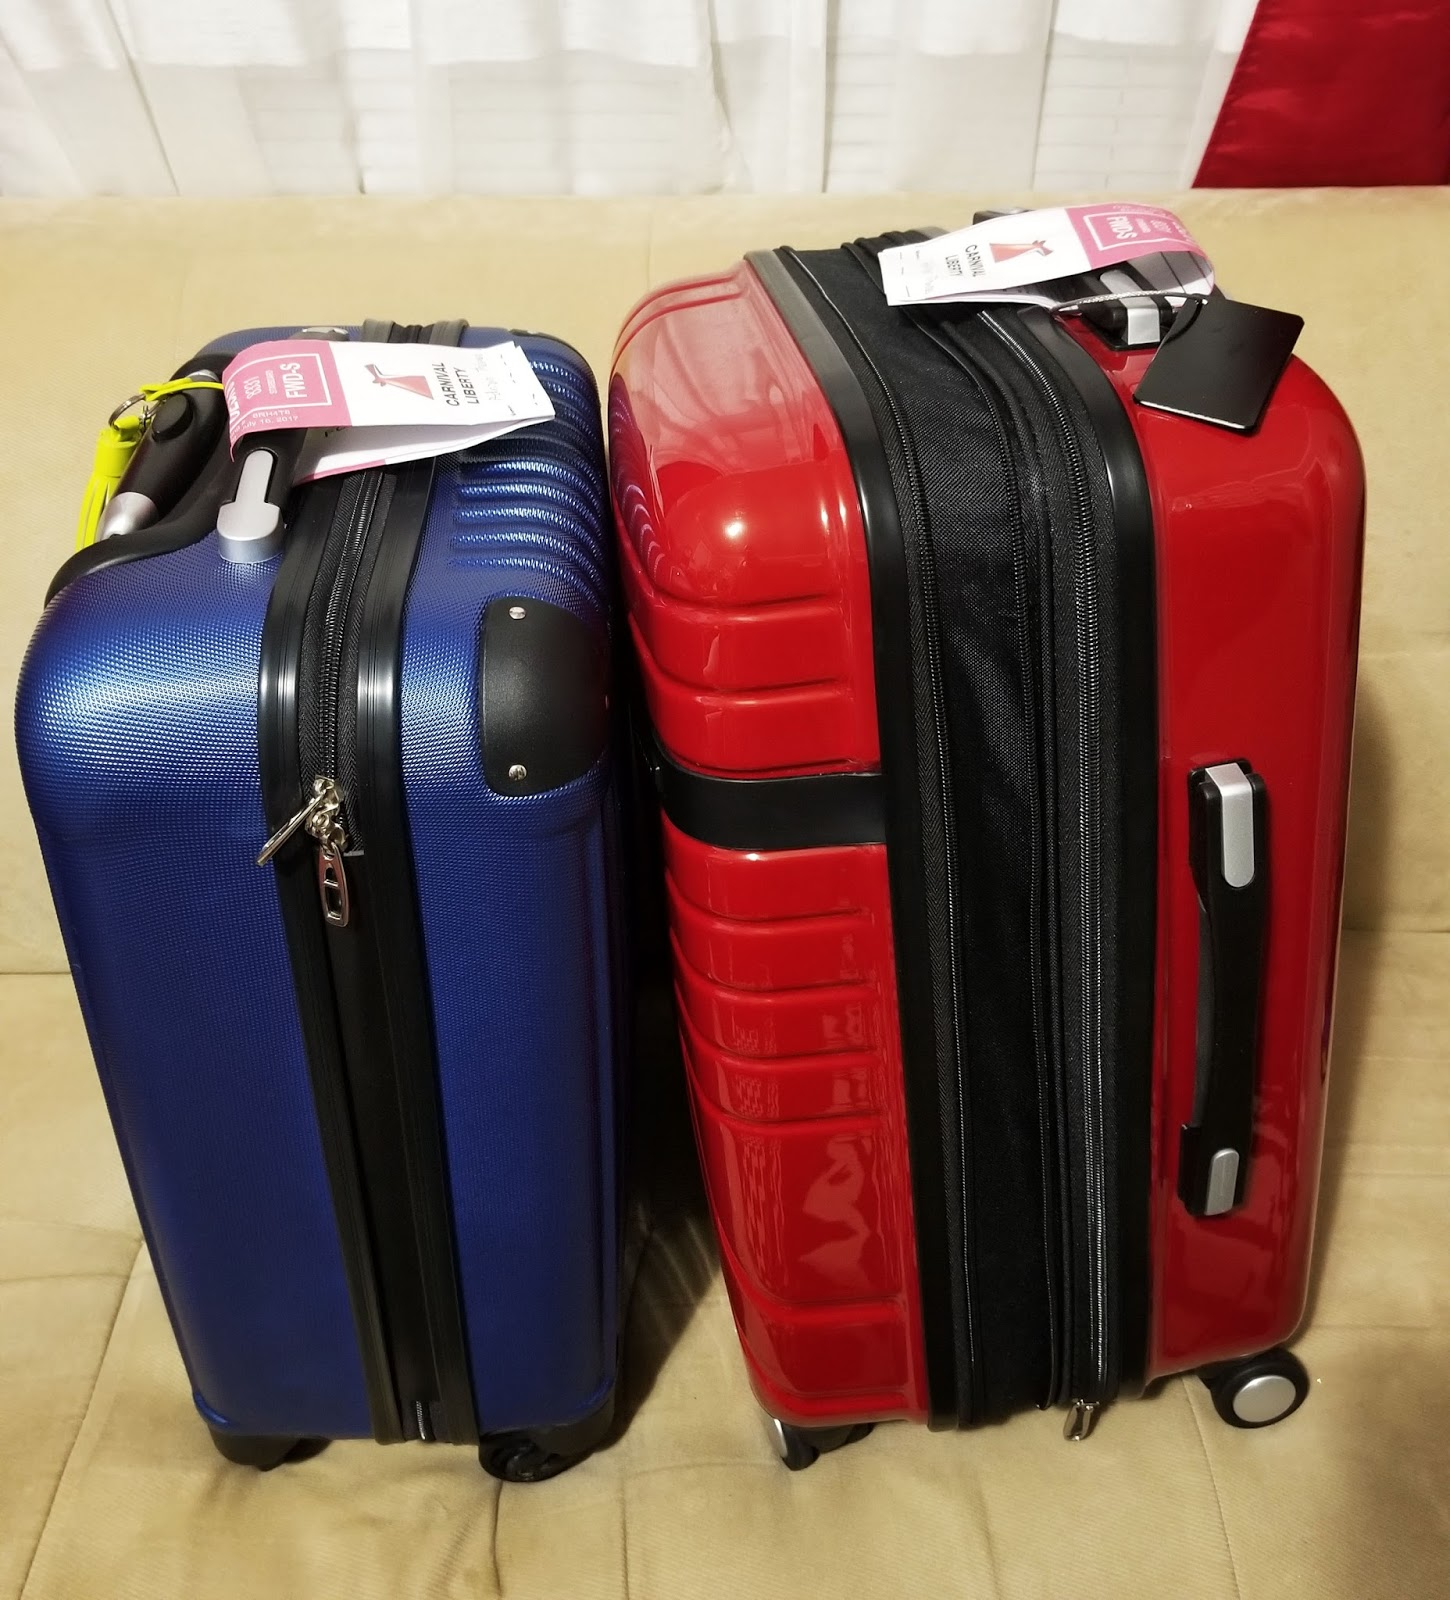 Husband S Check In 22 Inch Samsonite Carry On From Ross